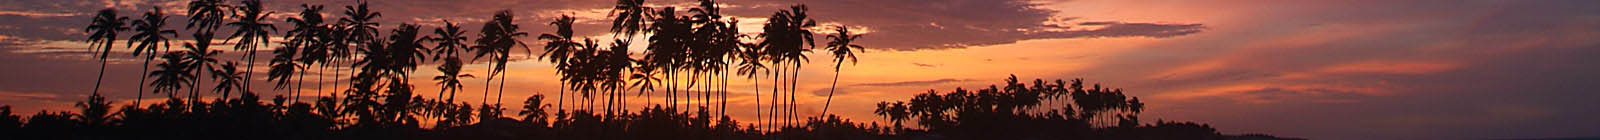 Benin, Grand Popo, red sunset palms, Banner.